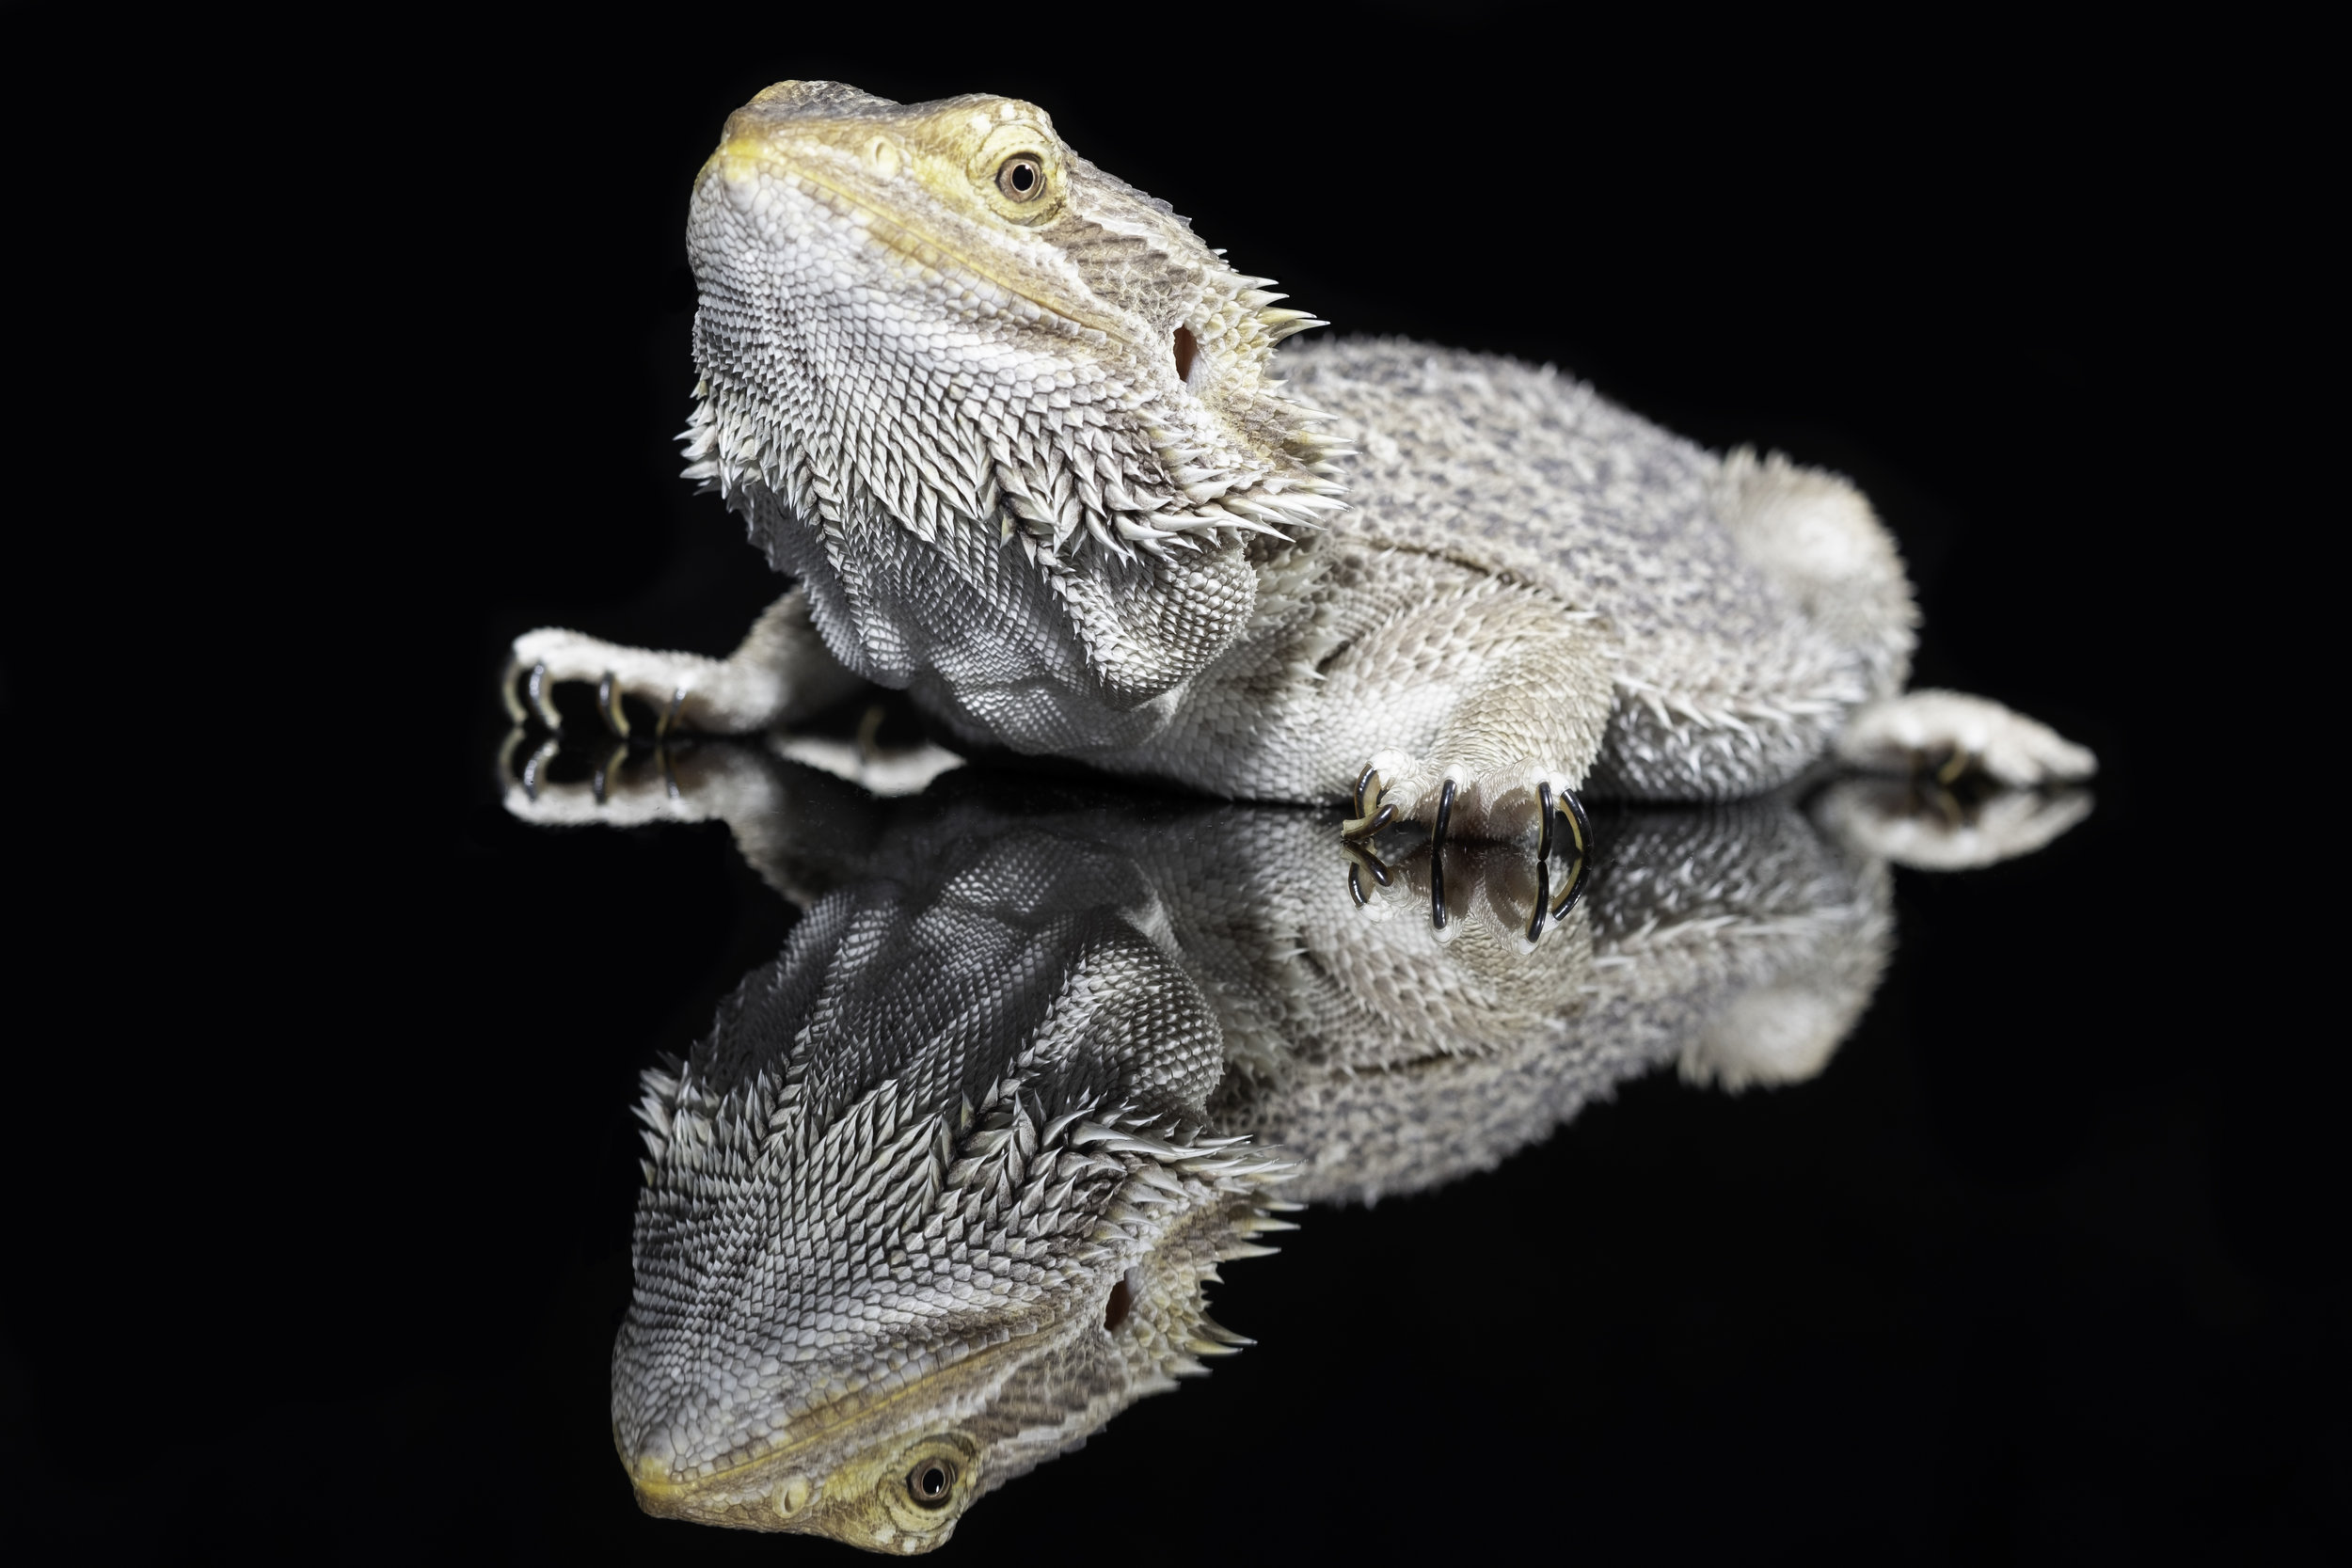 Prickels The Bearded Dragon.jpg